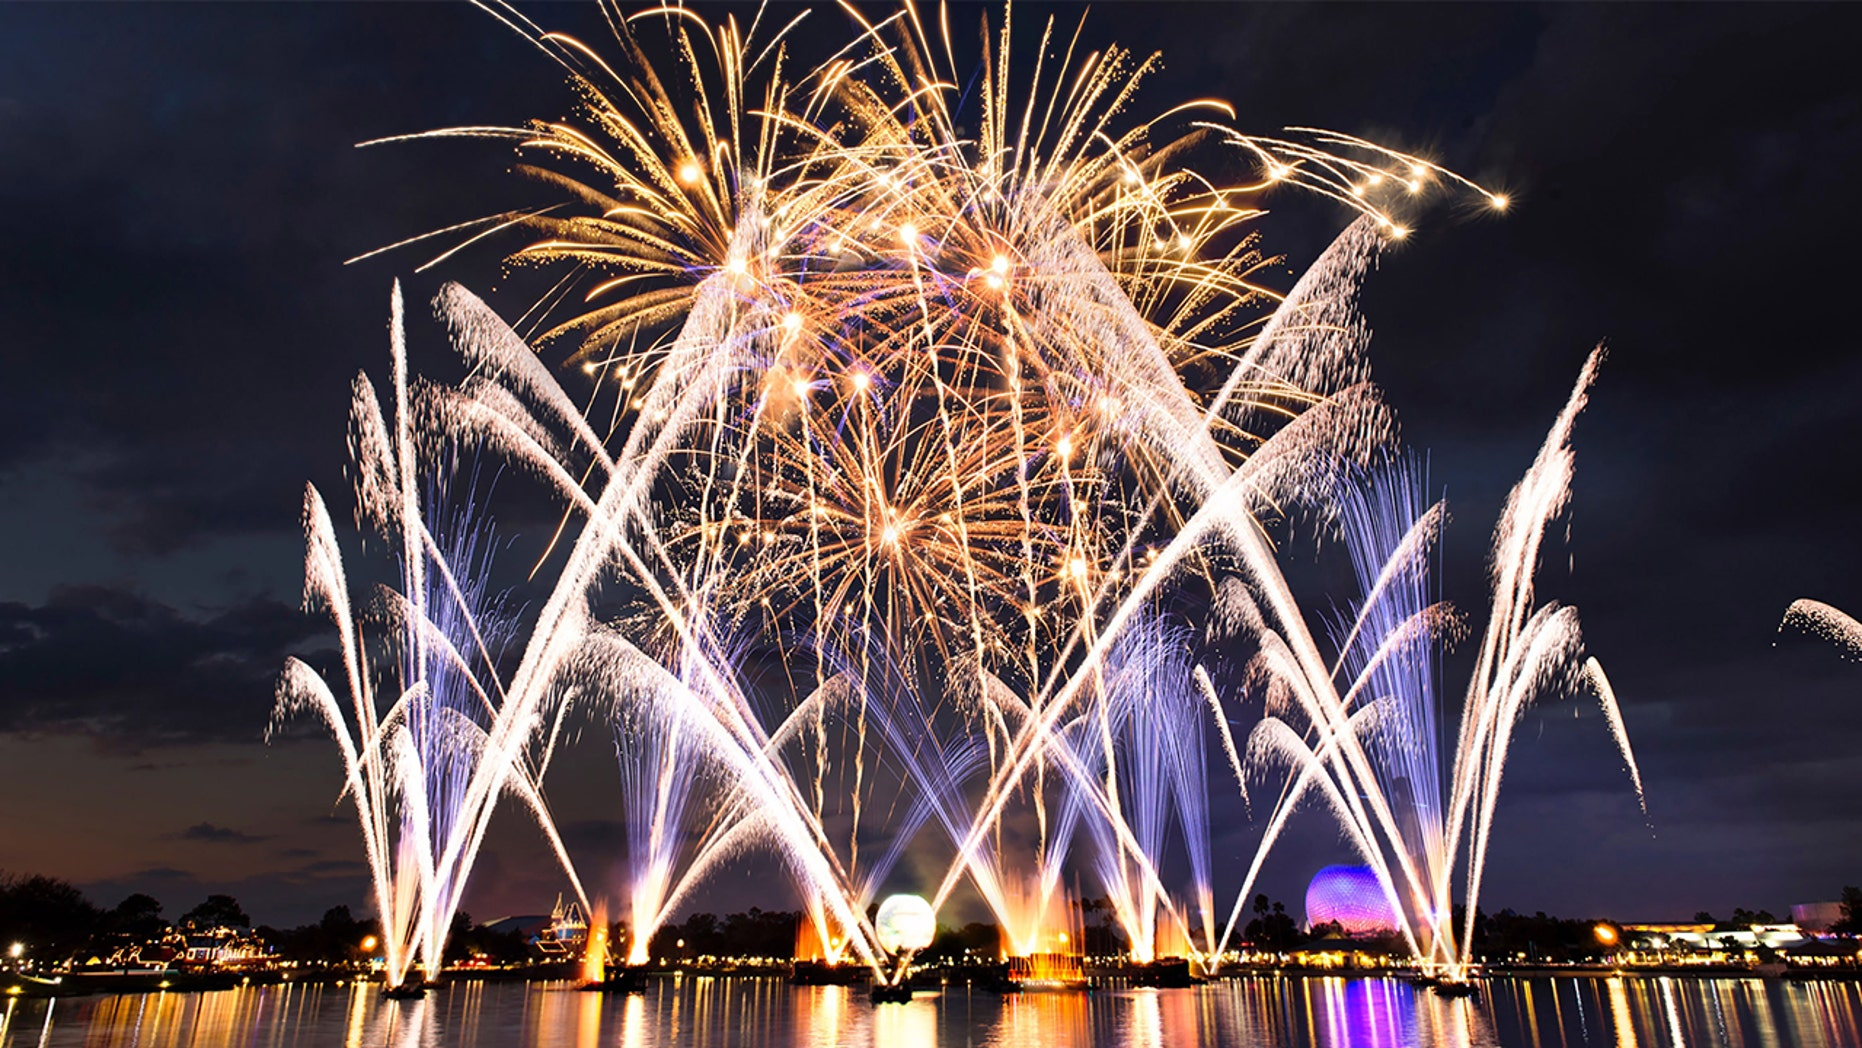 Disney World is ending a popular fireworks show in 2019, but will replace it with a new attraction.